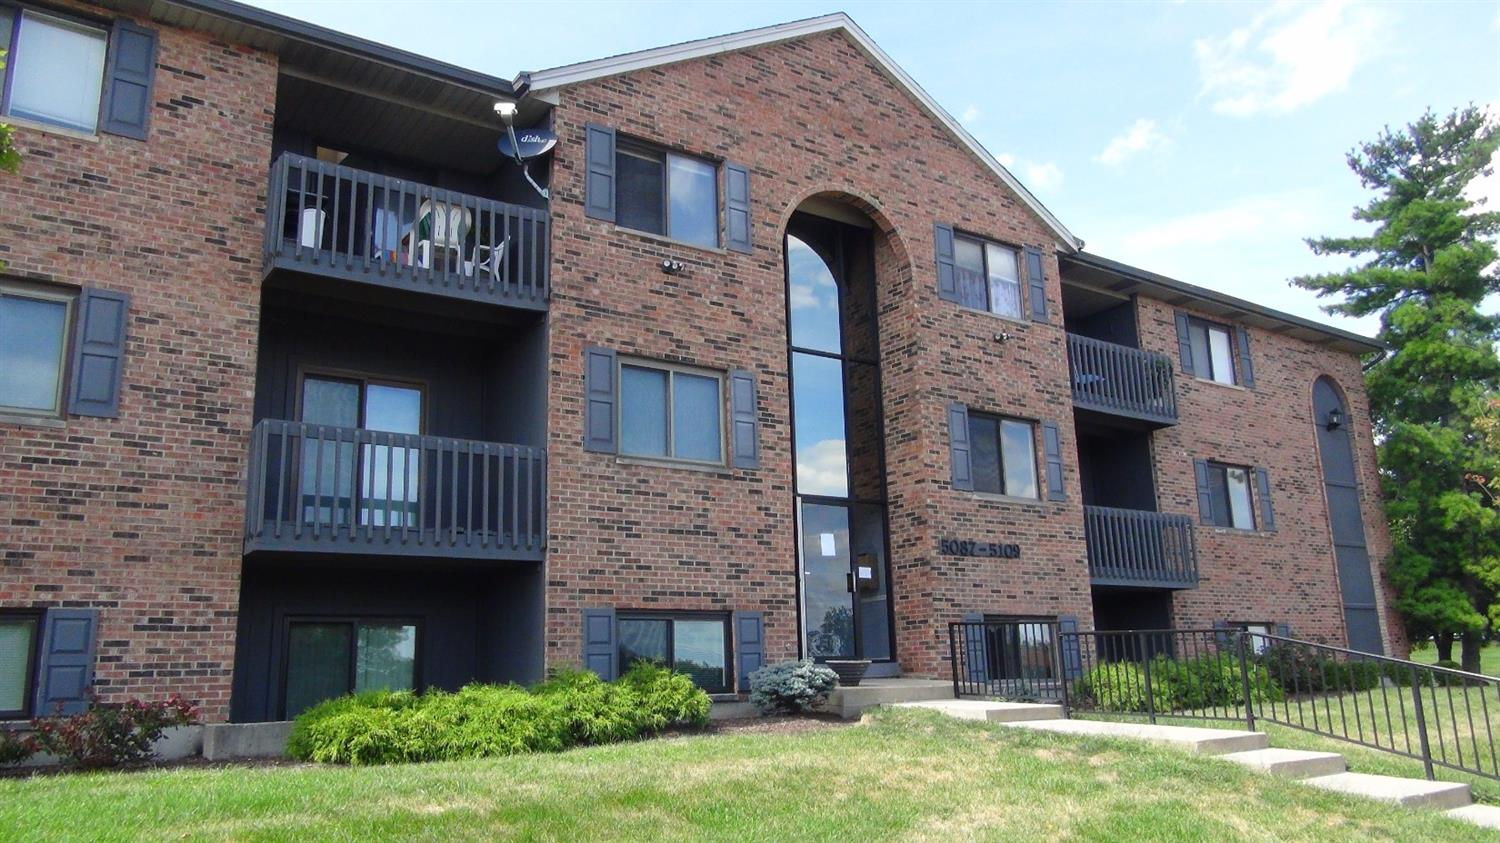 Property for sale at 5101 Tri County View Dr, West Chester,  Ohio 45011